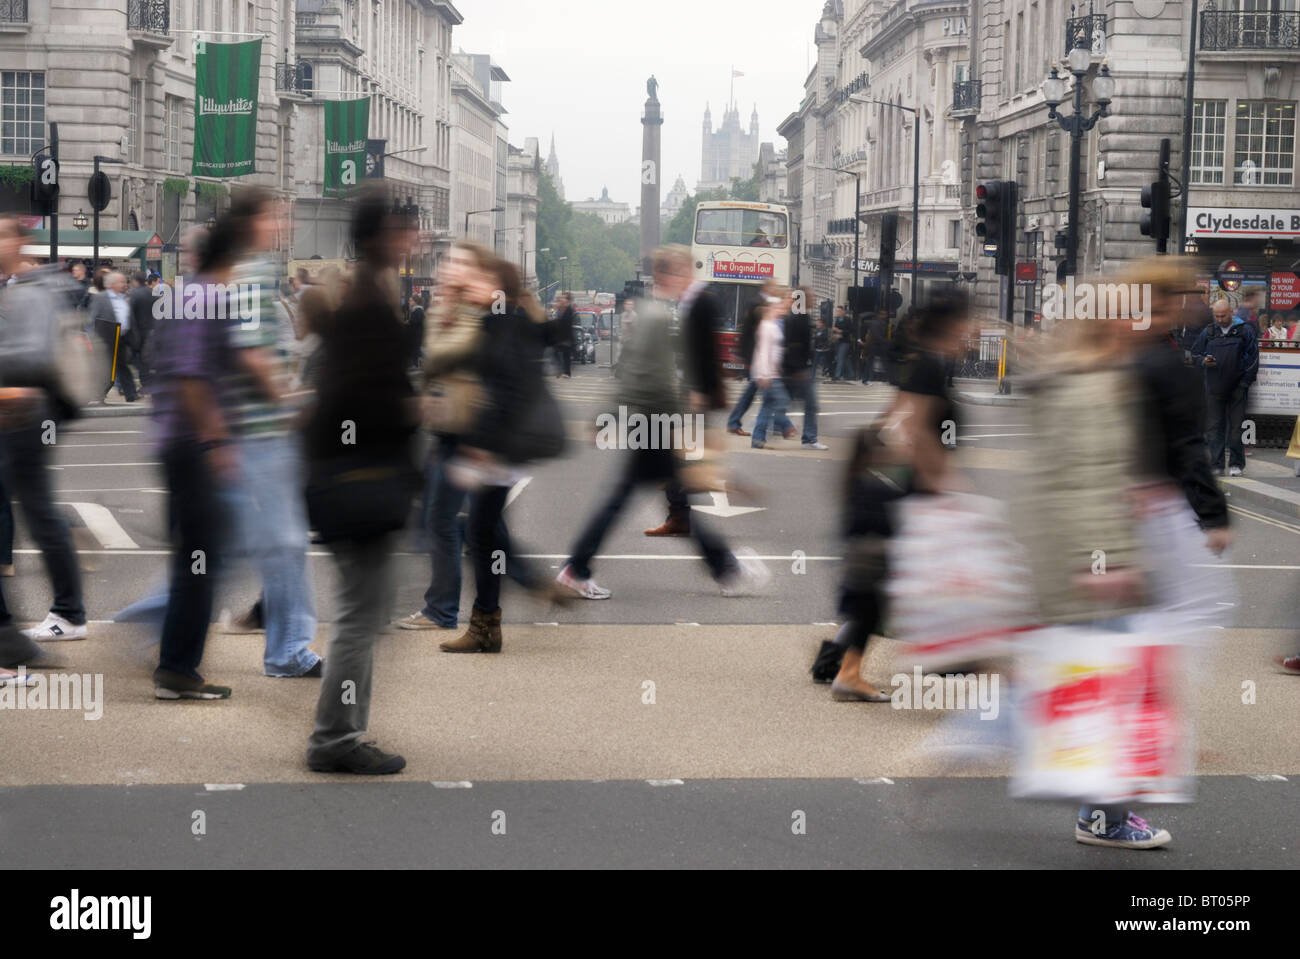 Pedestrians walk across a pedestrian crossing in Picadilly circus, London, ENgland - Stock Image